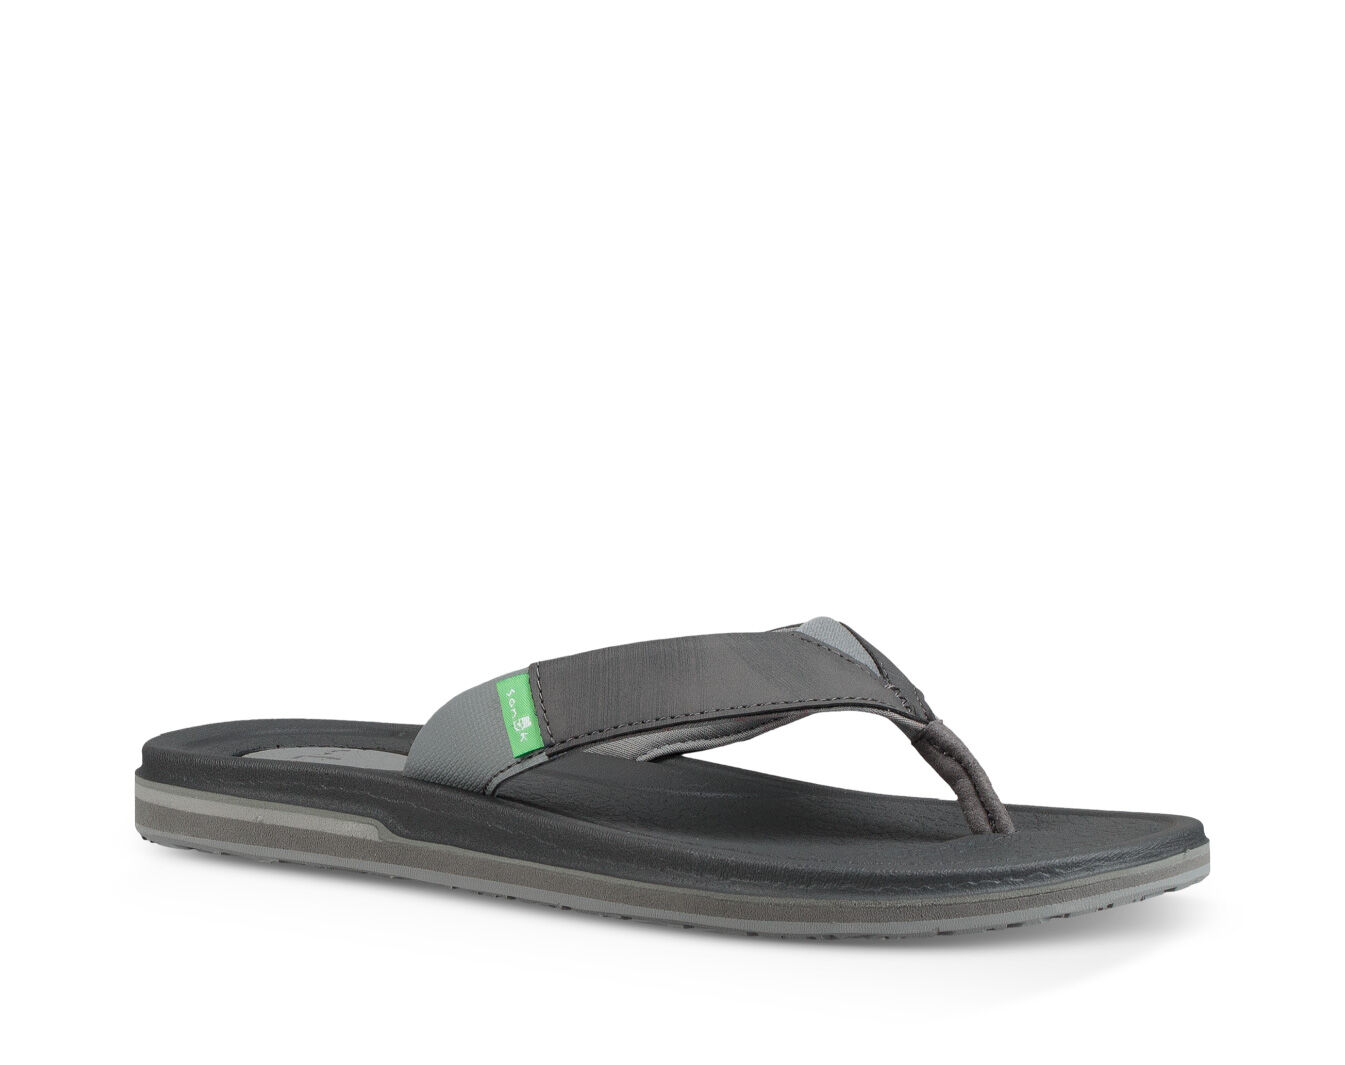 Spirited Mens Flip Flops Clothes, Shoes & Accessories